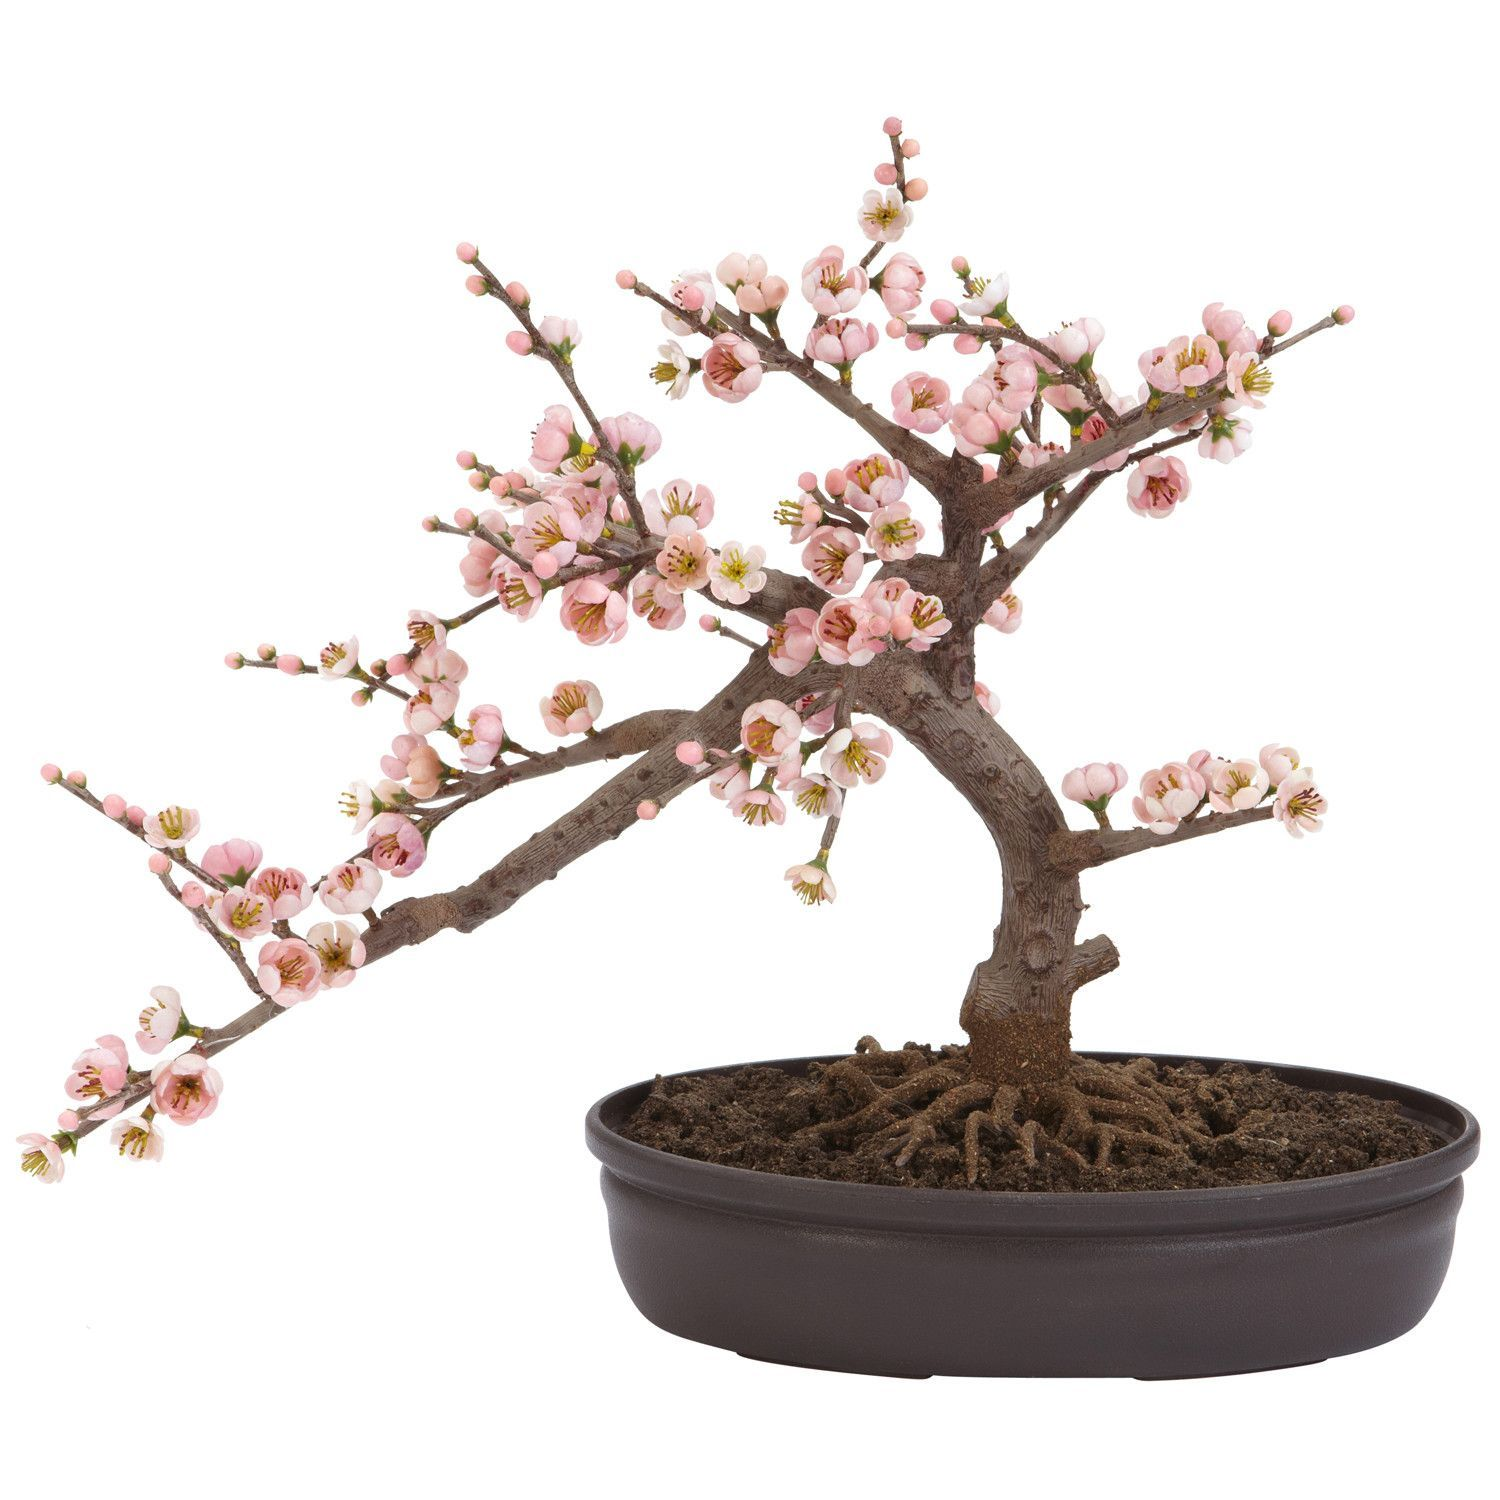 Features:  -Symbolizes the botanical beauty of Japan.  -Will offer elegance and tranquility.  Product Type: -Tree.  Plant Type: -Bonsai.  Orientation: -Floor.  Plant Material: -Plastic.  Base Included